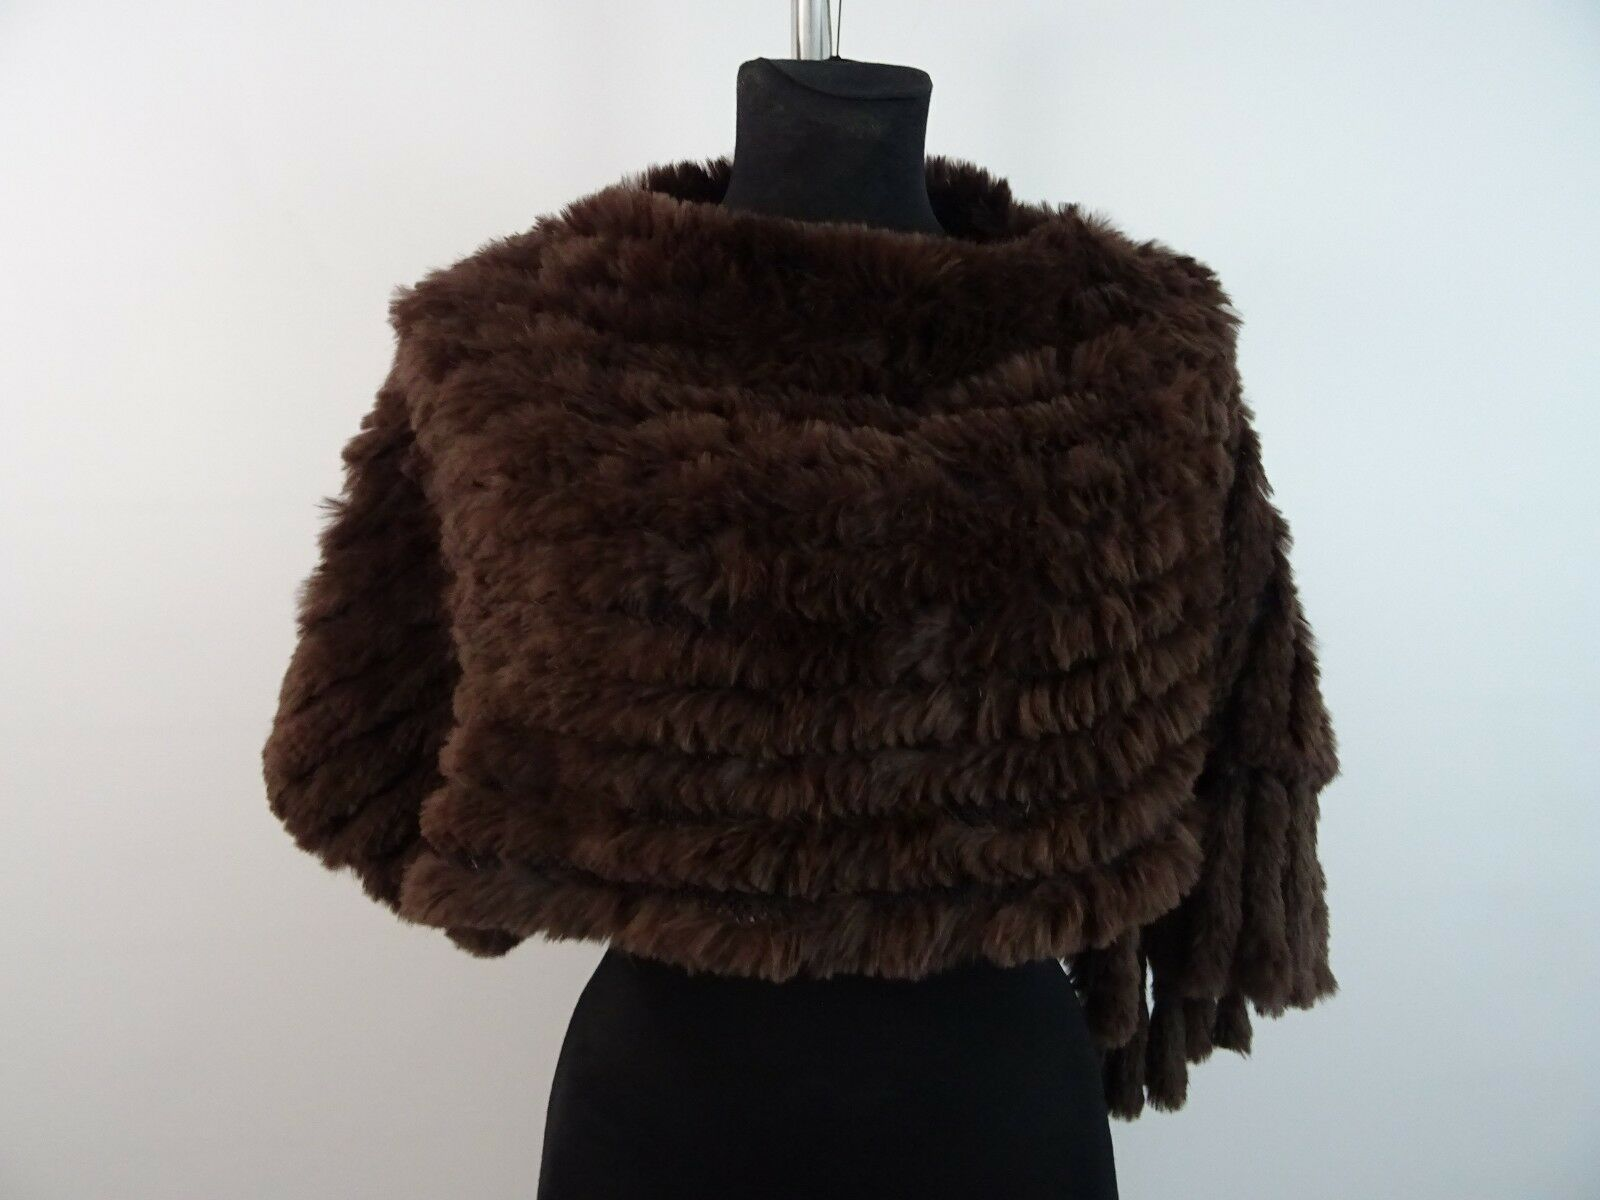 Mini Poncho aus Echtfell Pelzcape Poncho brown Pelz Real Fur Fransen One Size